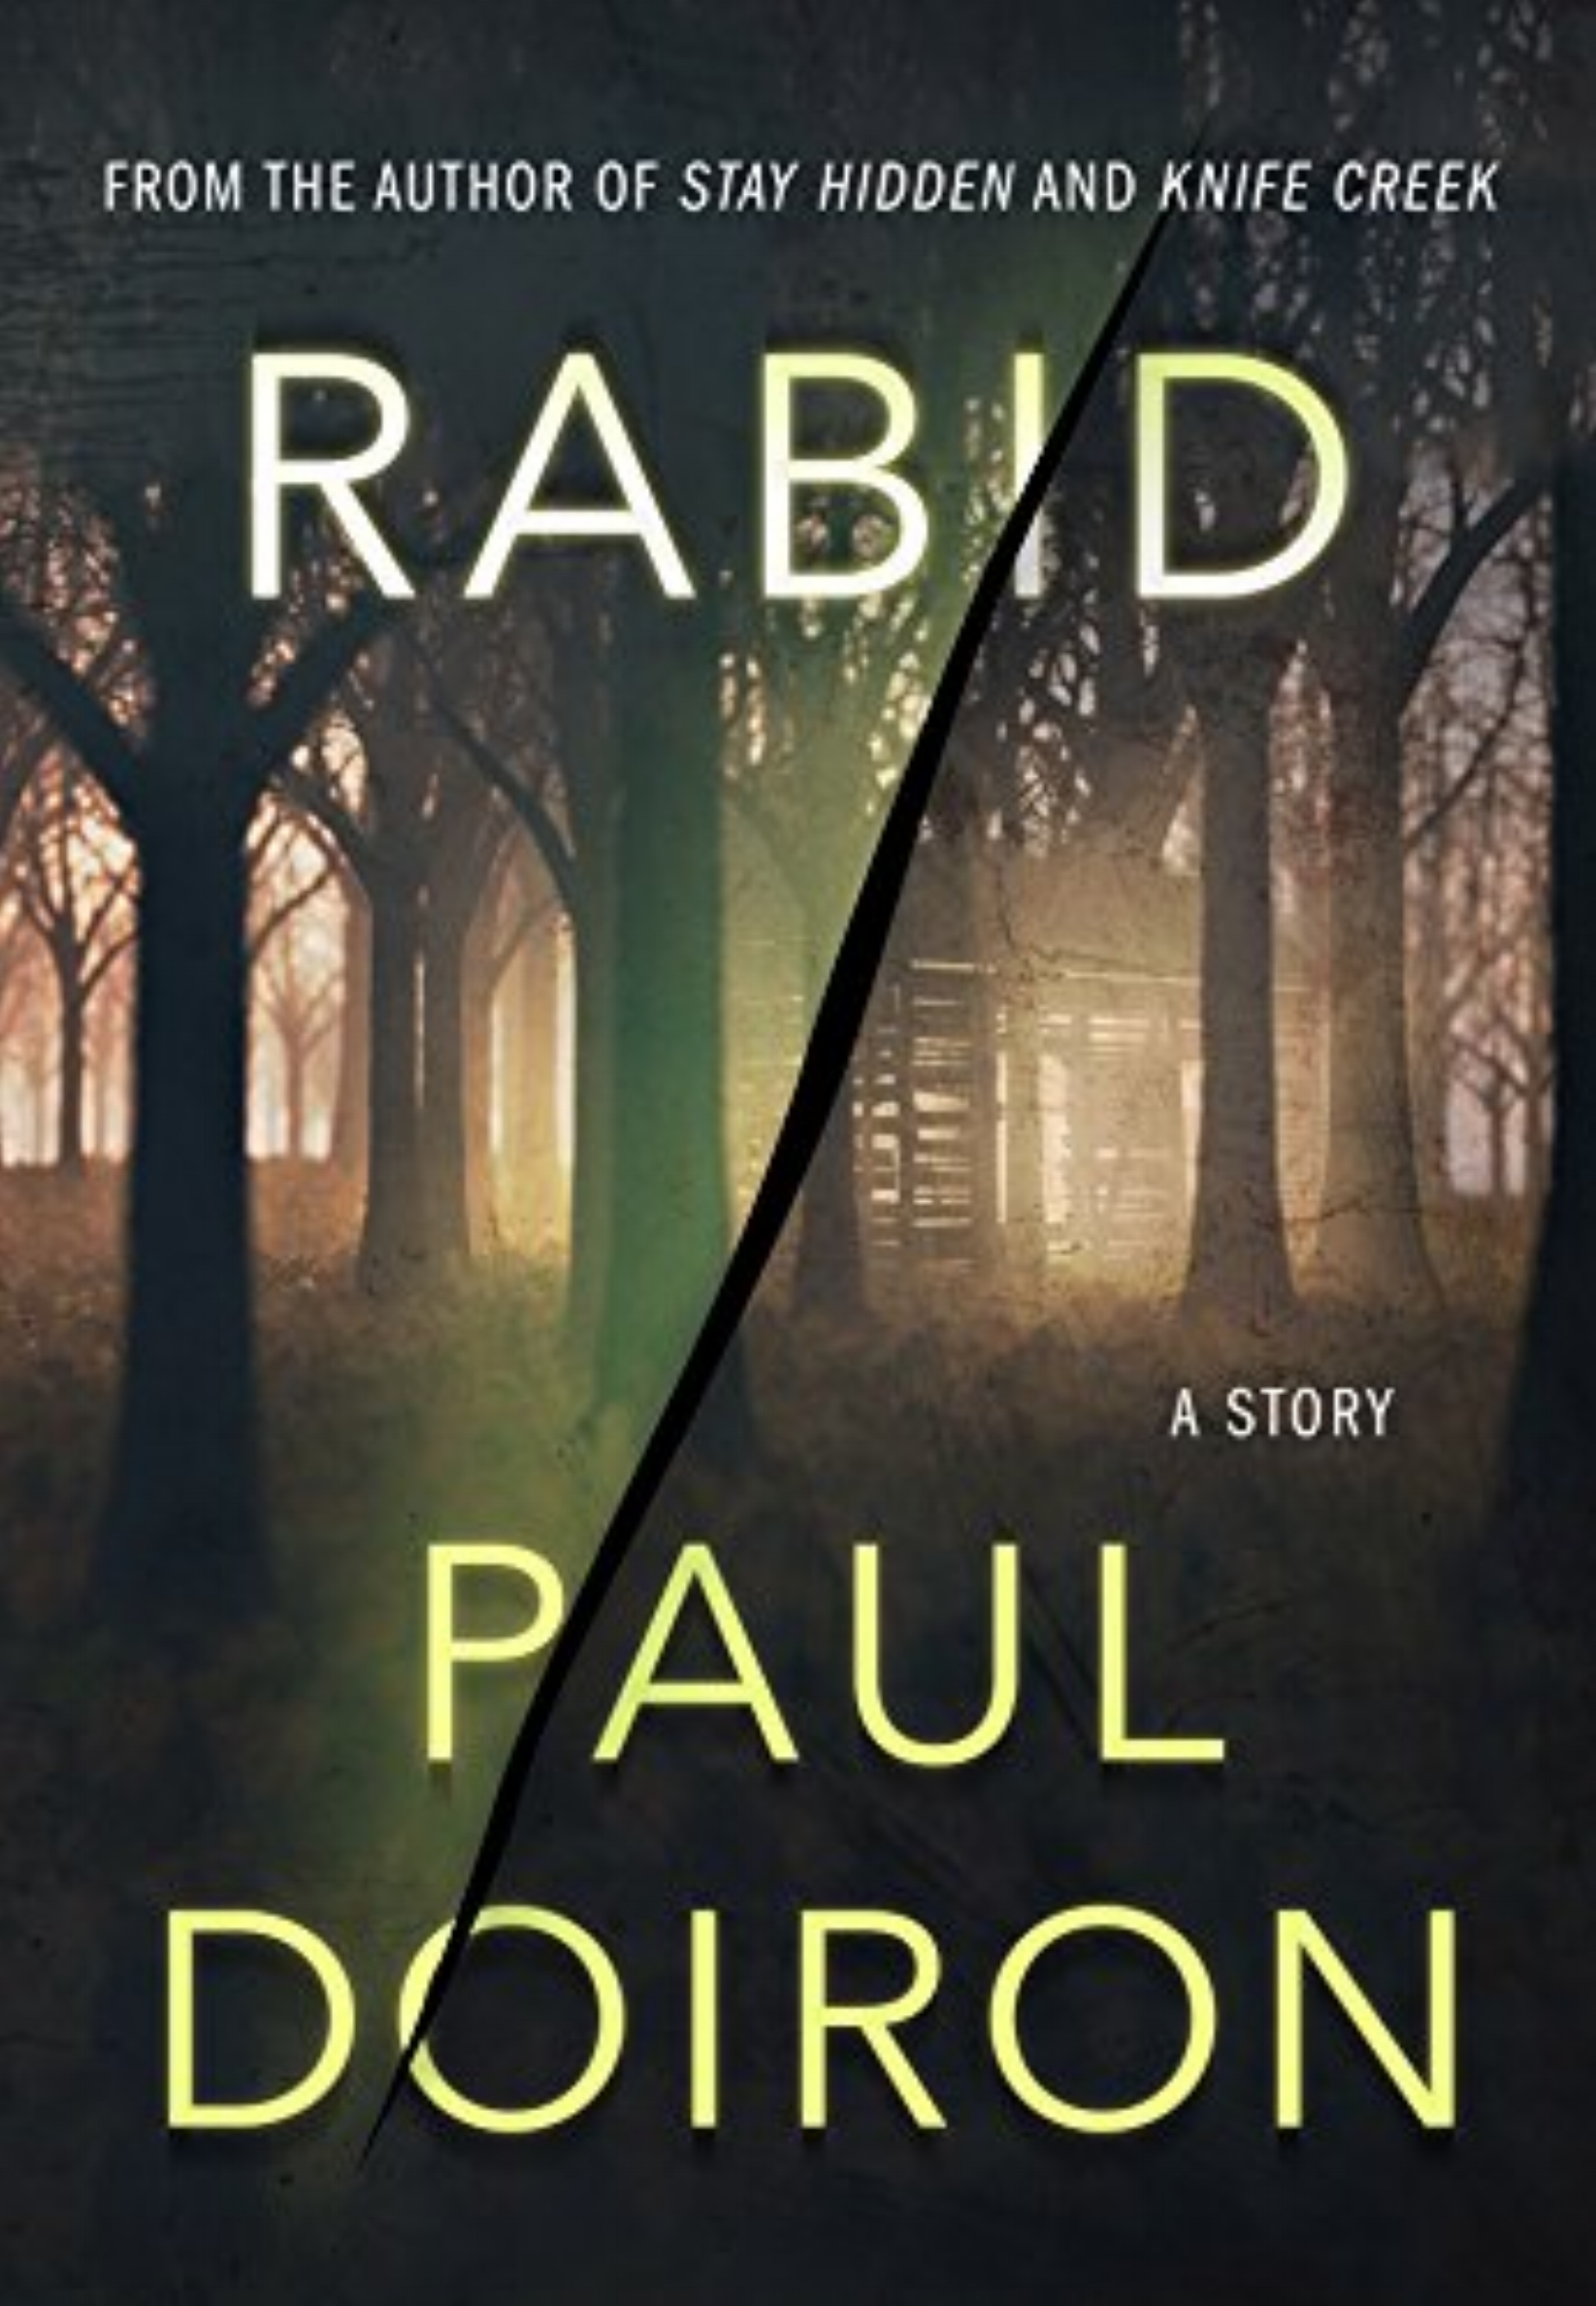 Click cover to buy the short story  Rabid.  (E-book or audiobook only.)